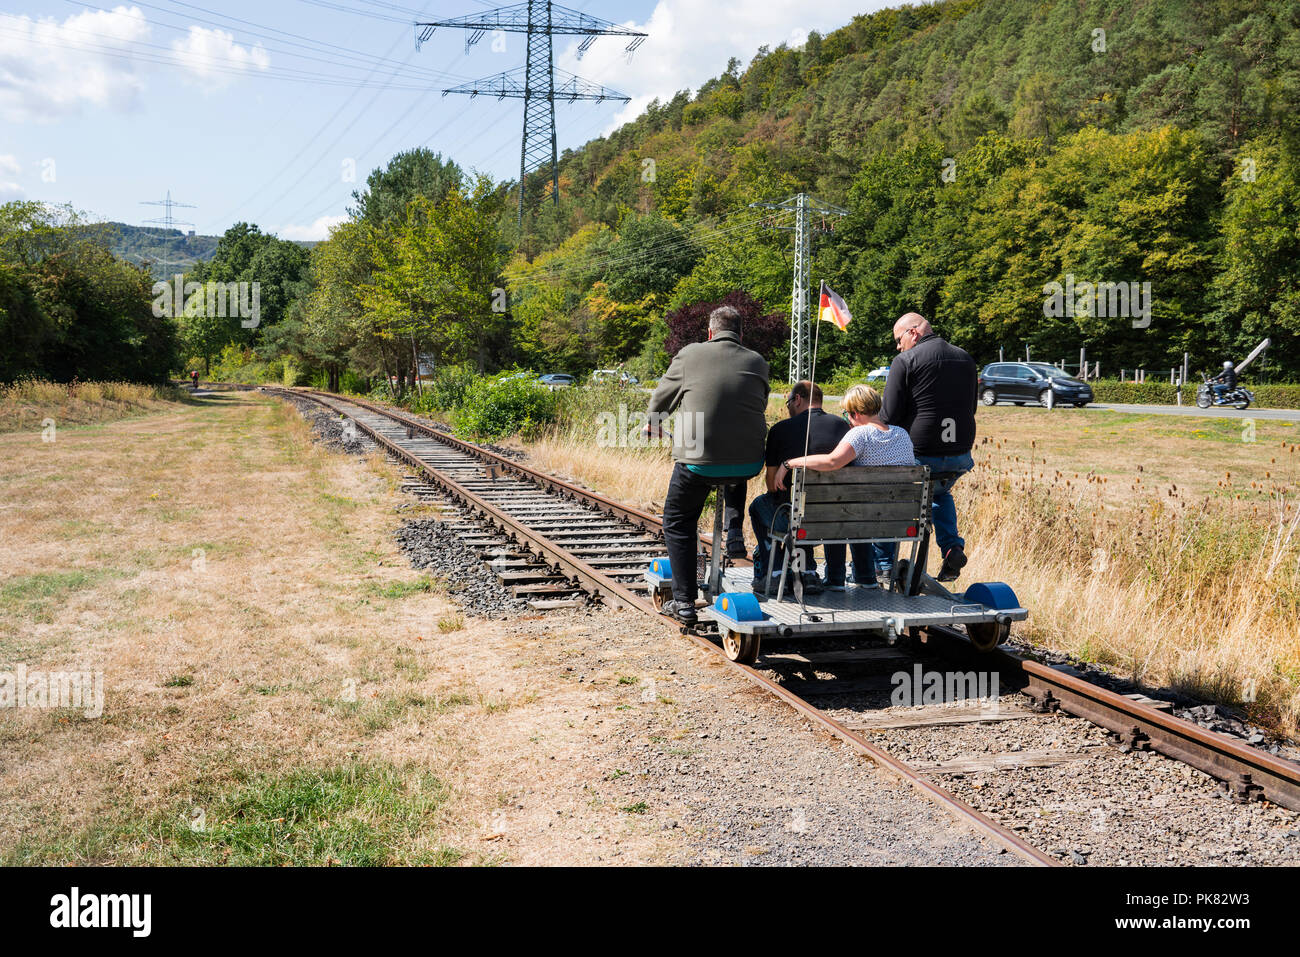 A draisine for tourists, Affoldern, Lake Edersee, Hesse, Germany, Europe - Stock Image